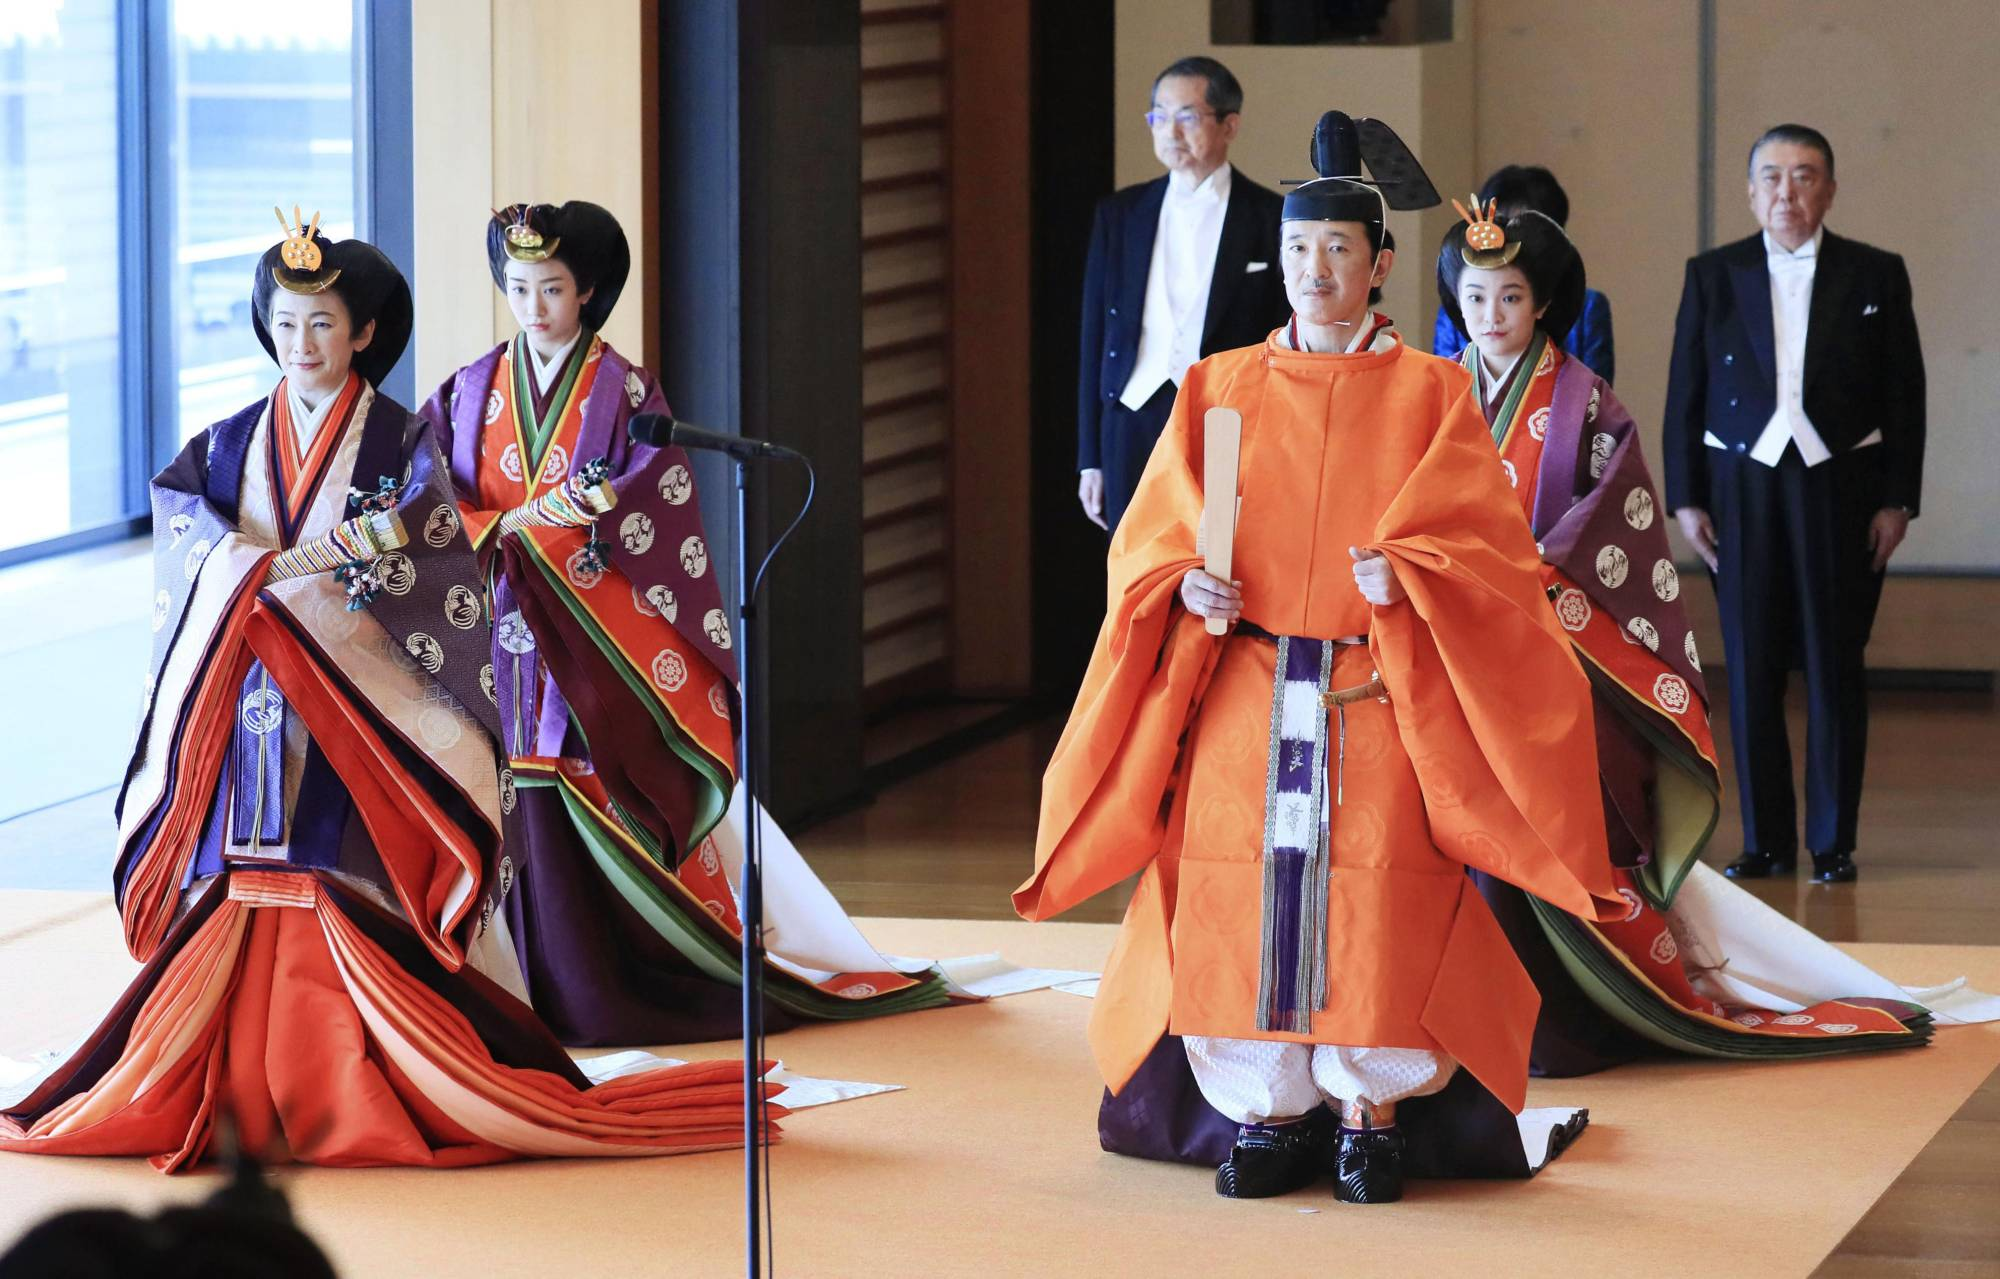 Crown Prince Akishino (front, right) and Crown Princess Kiko (front, left),  along with their daughters Princess Mako (back, right) and Princess Kako, head to Emperor Naruhito's enthronement ceremony at the Imperial Palace in Tokyo on Oct. 22, 2019. | KYODO